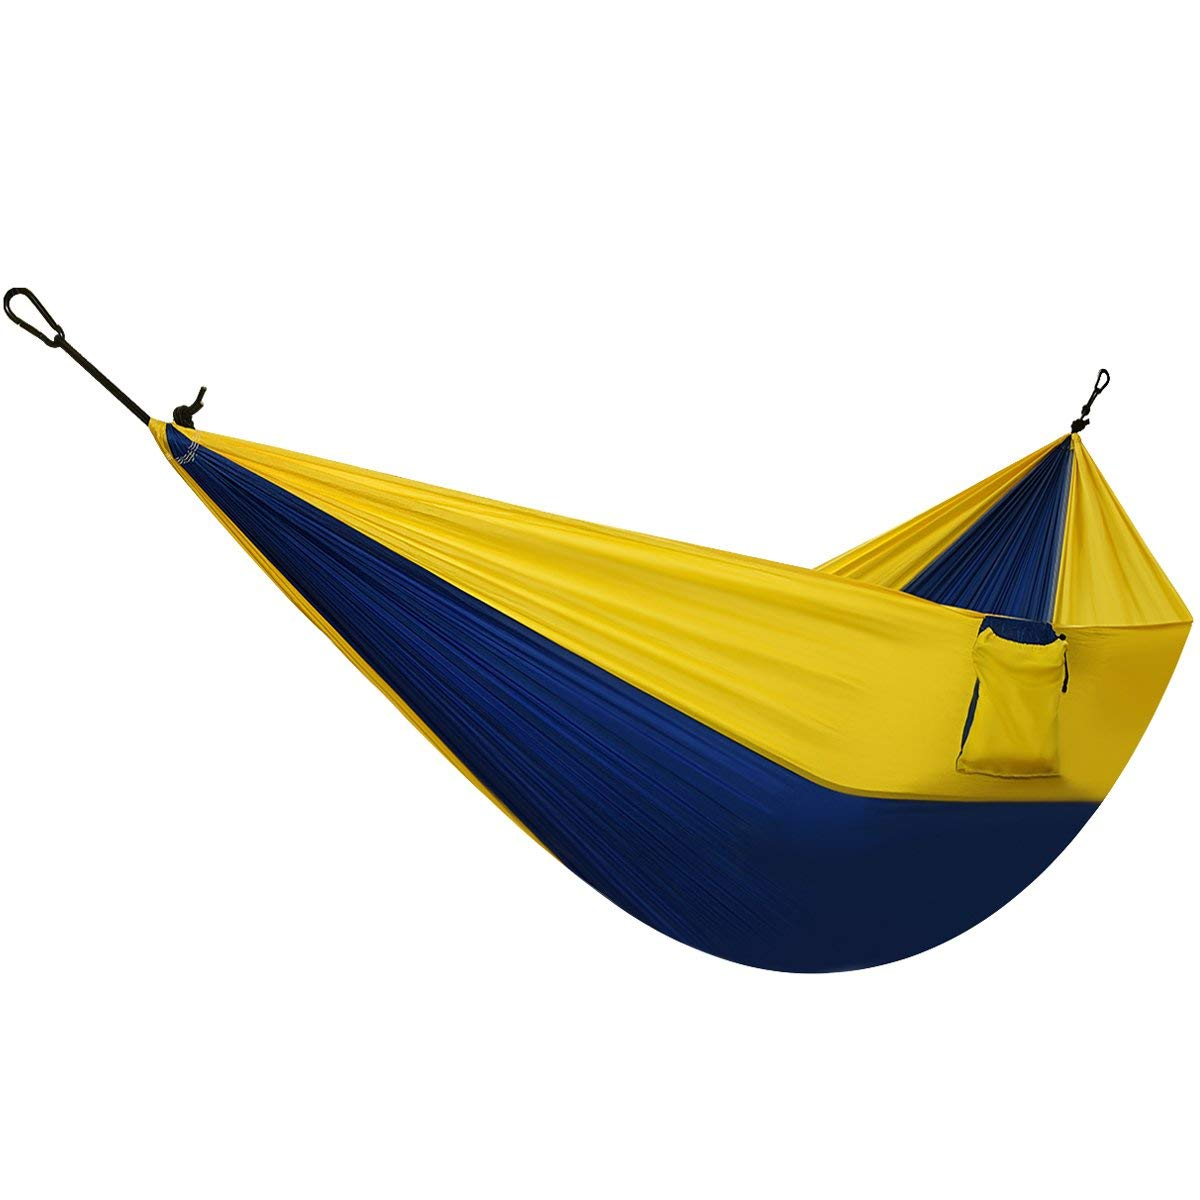 Homitt Outdoor Camping Hammock Set with 2M/6.56FT Hammock Tree Ropes & 2 Solid Carabiners for Travelling, Hiking, Backpacking, Motorcycle Trips, Beach or Mountain – Blue & Yellow